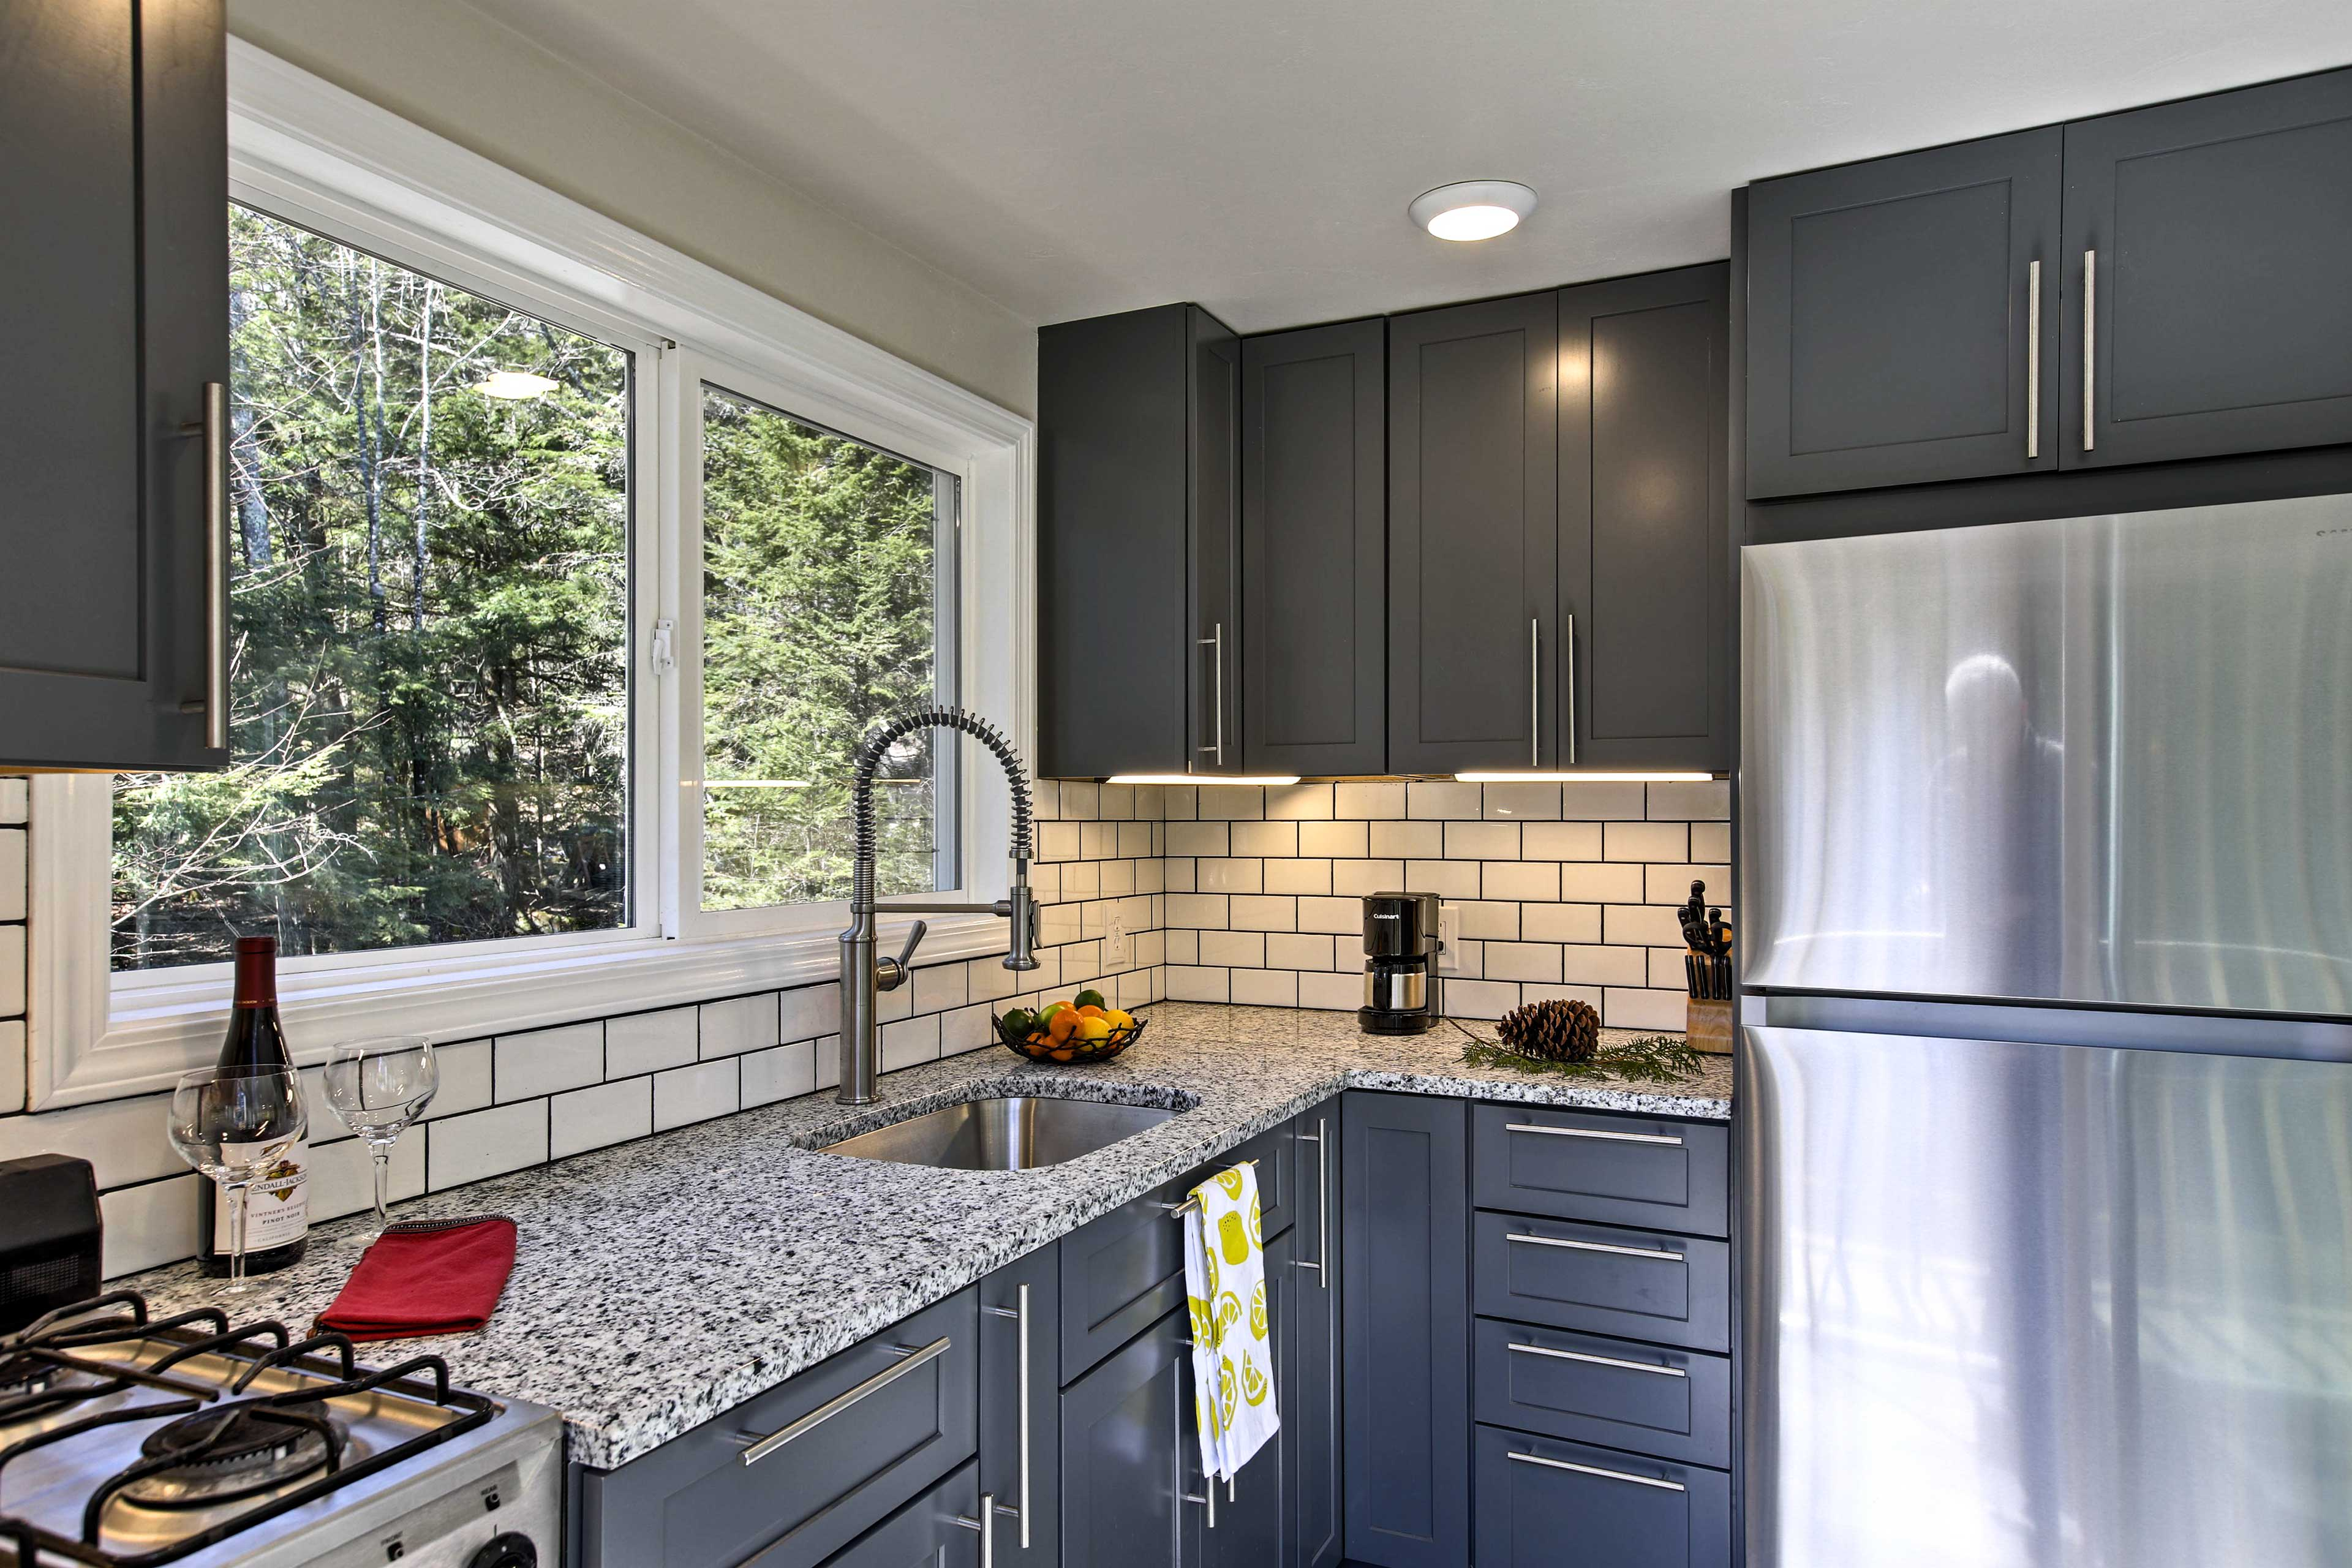 You won't mind cooking in this inviting space!